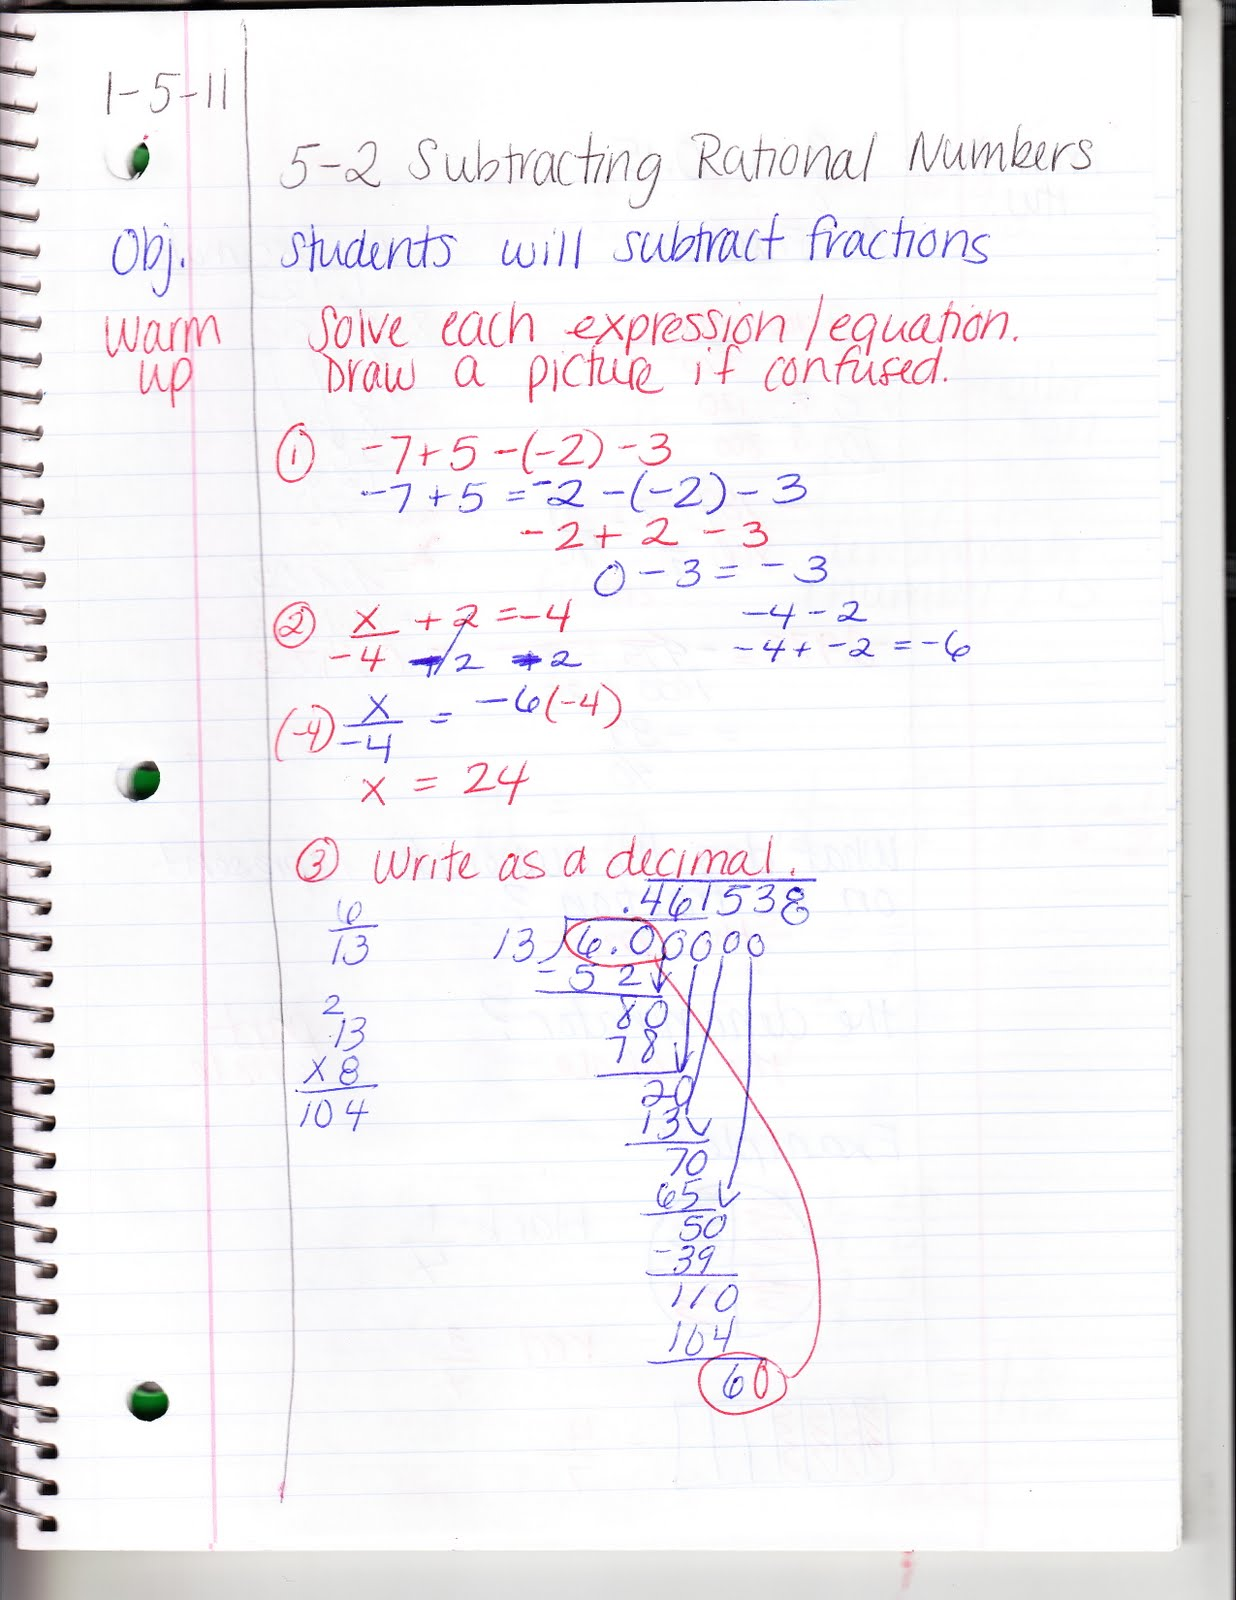 Ms Jean S Algebra Readiness Blog 5 2 Subtracting Rational Numbers